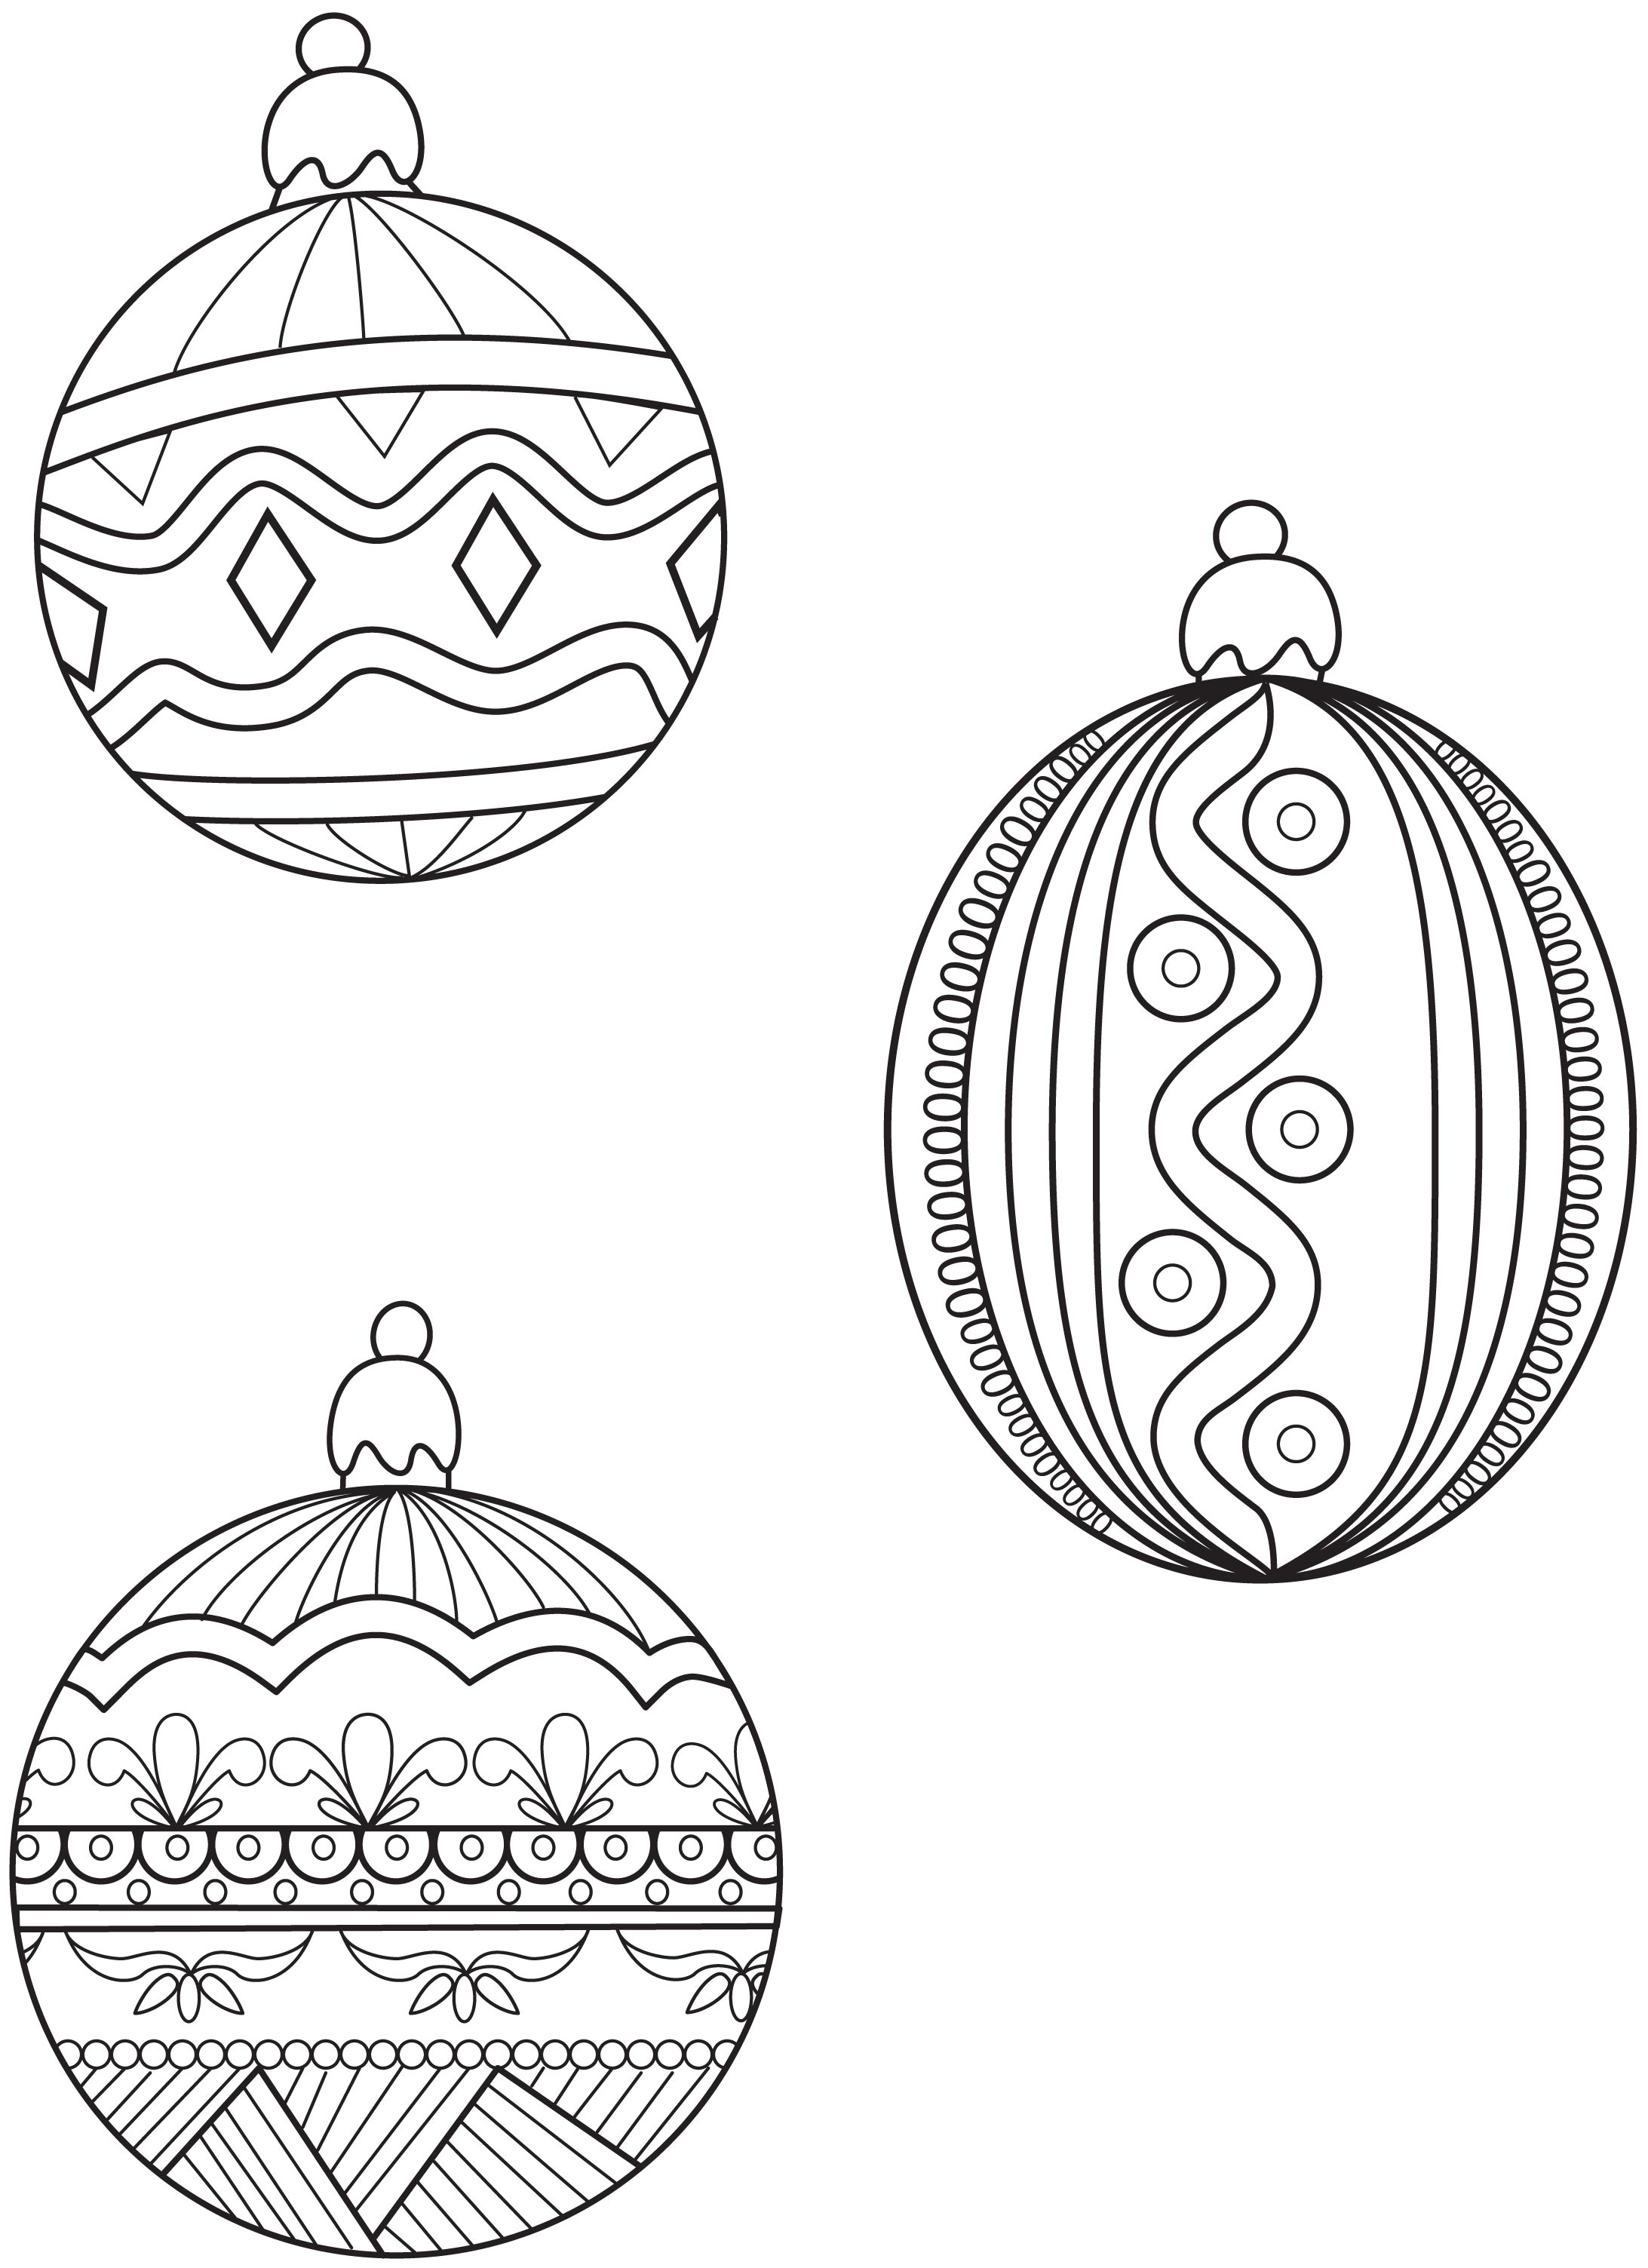 Adorable image regarding ornaments printable